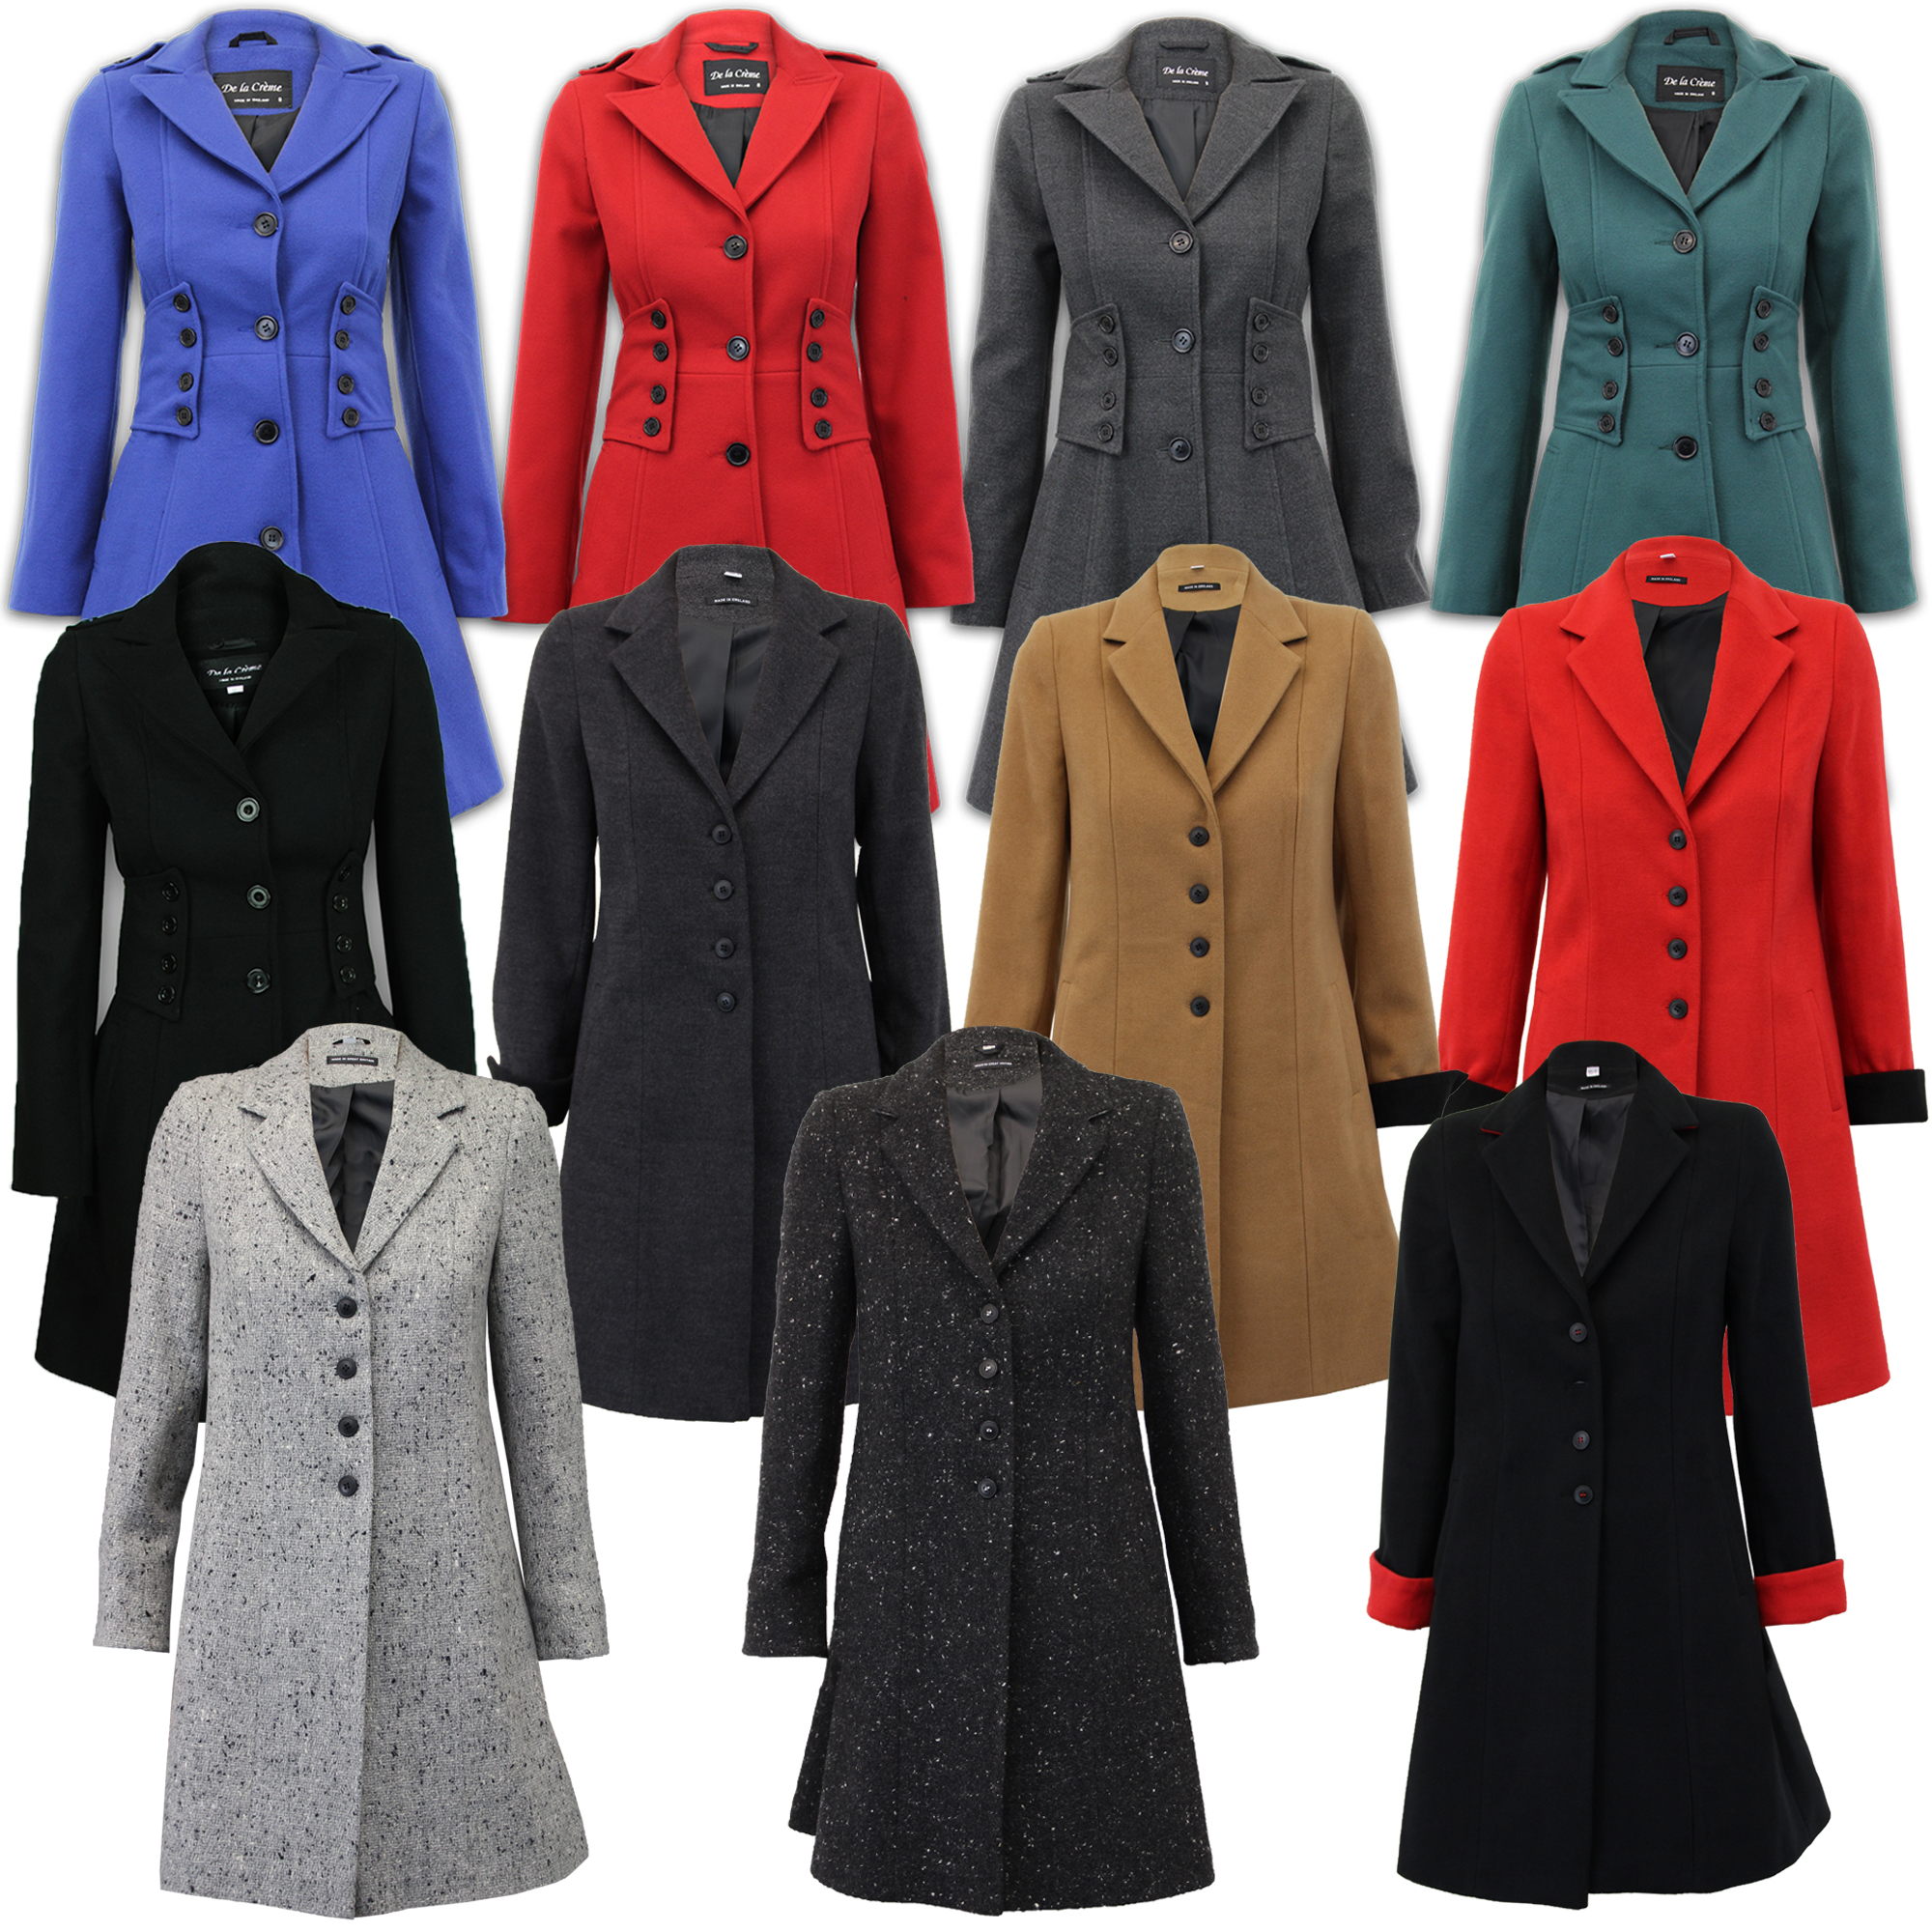 Jacket clipart lady jacket. Ladies coat womens wool